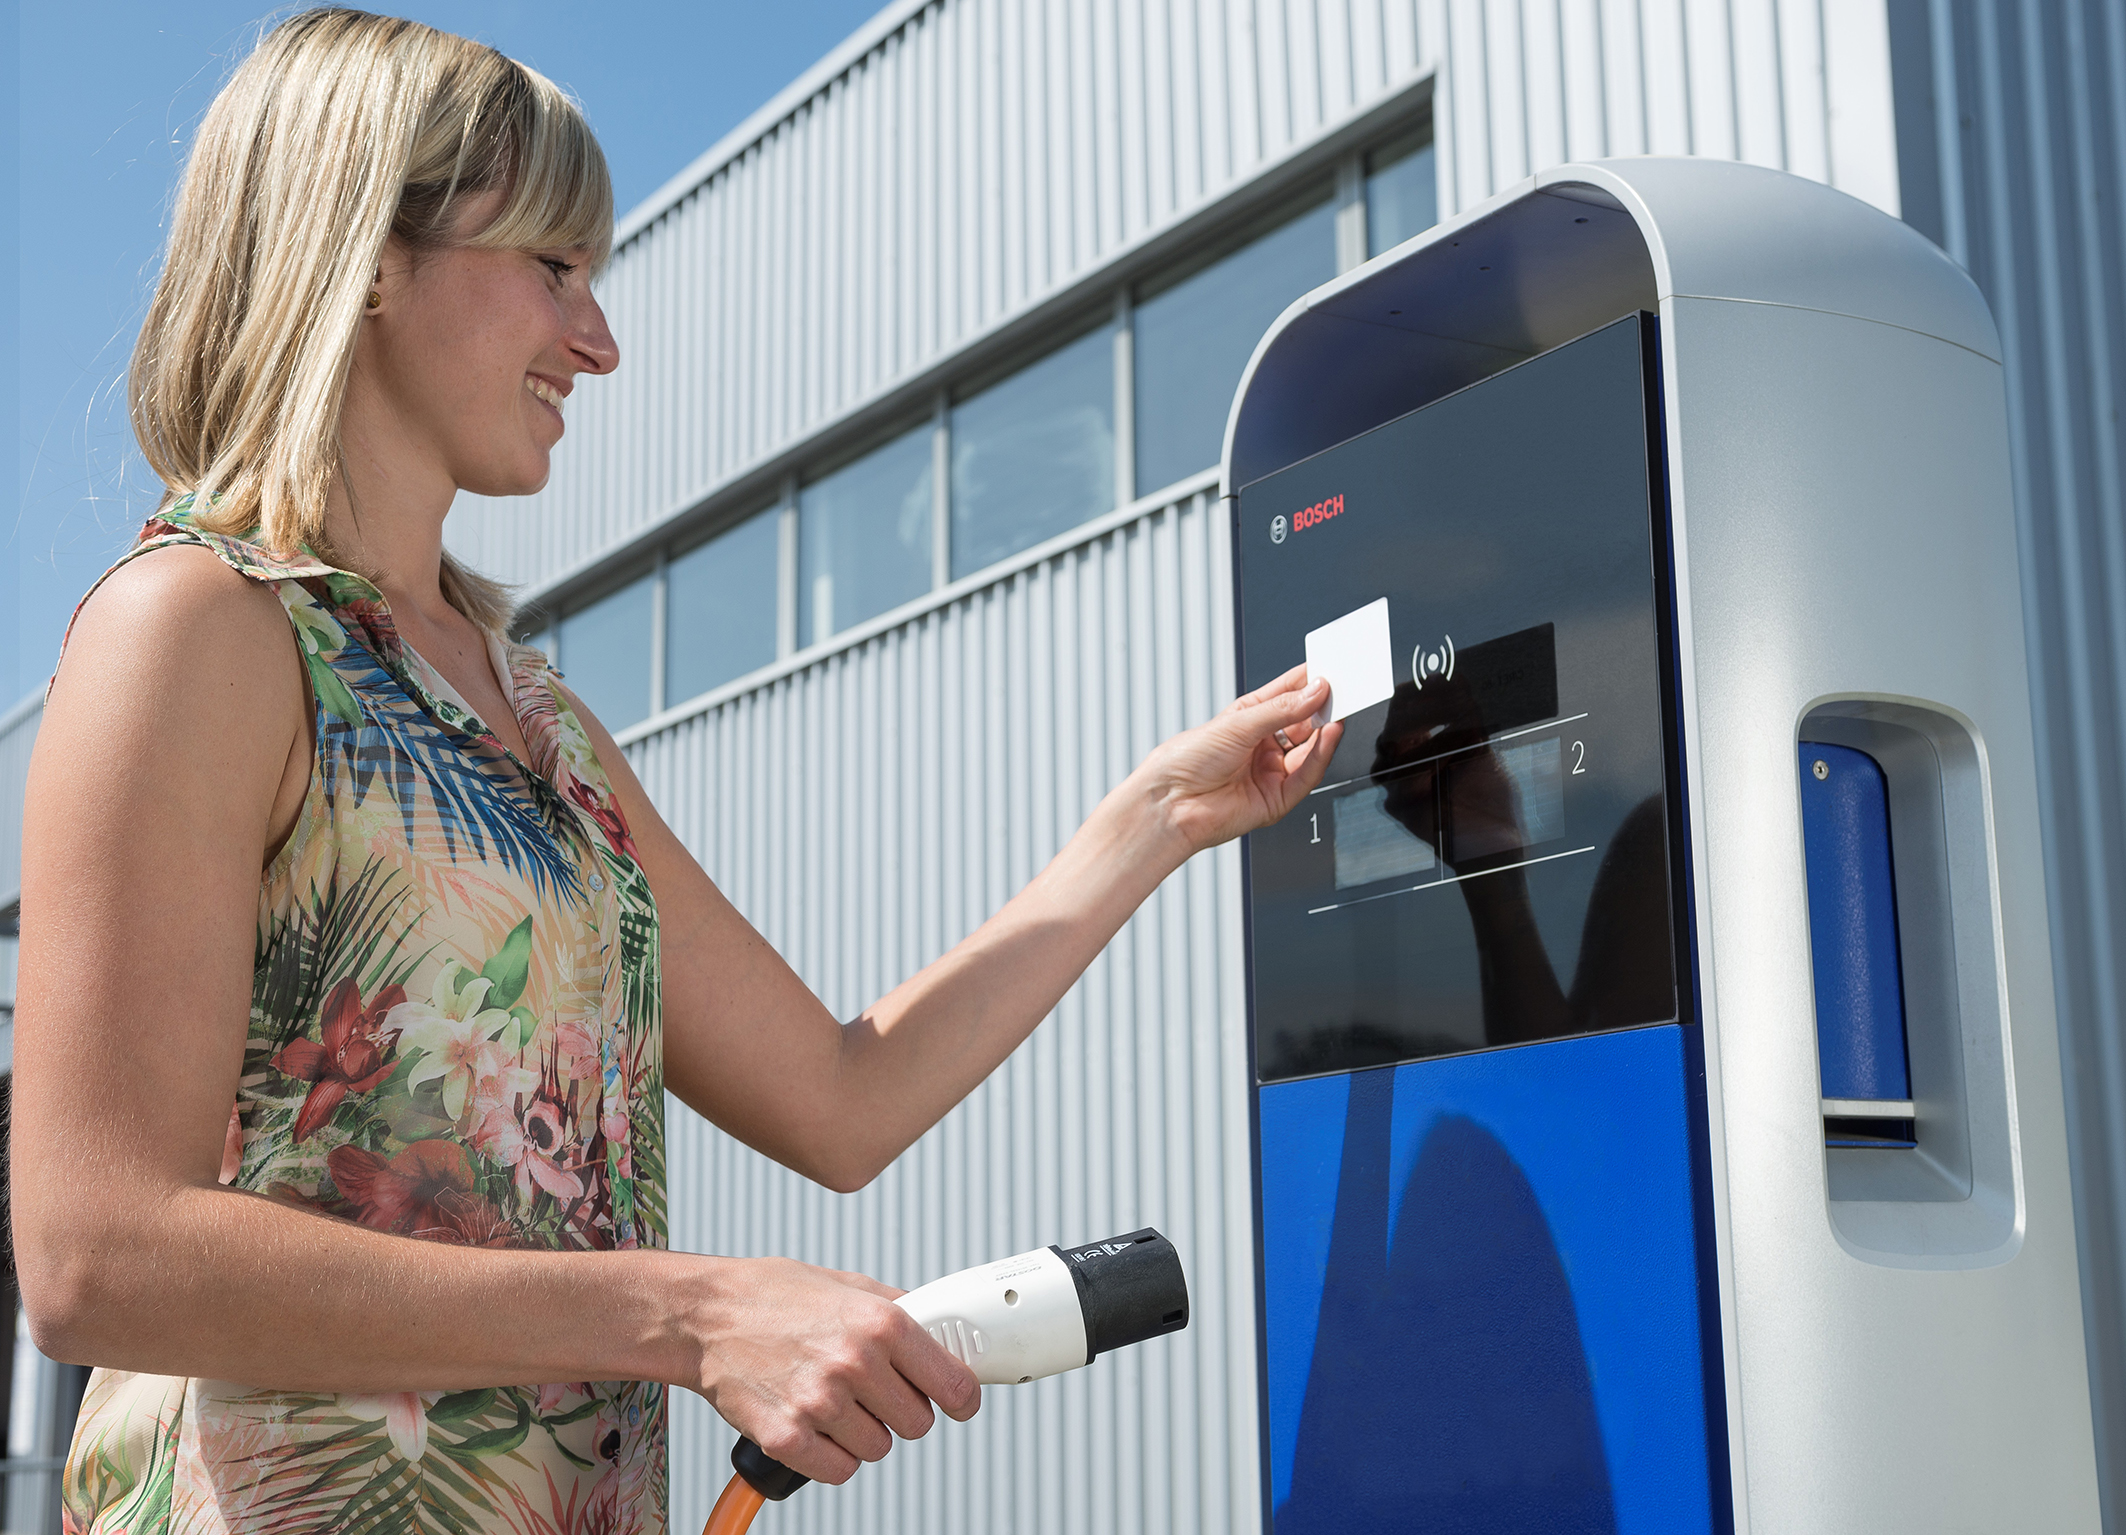 New business areas in the age of electromobility